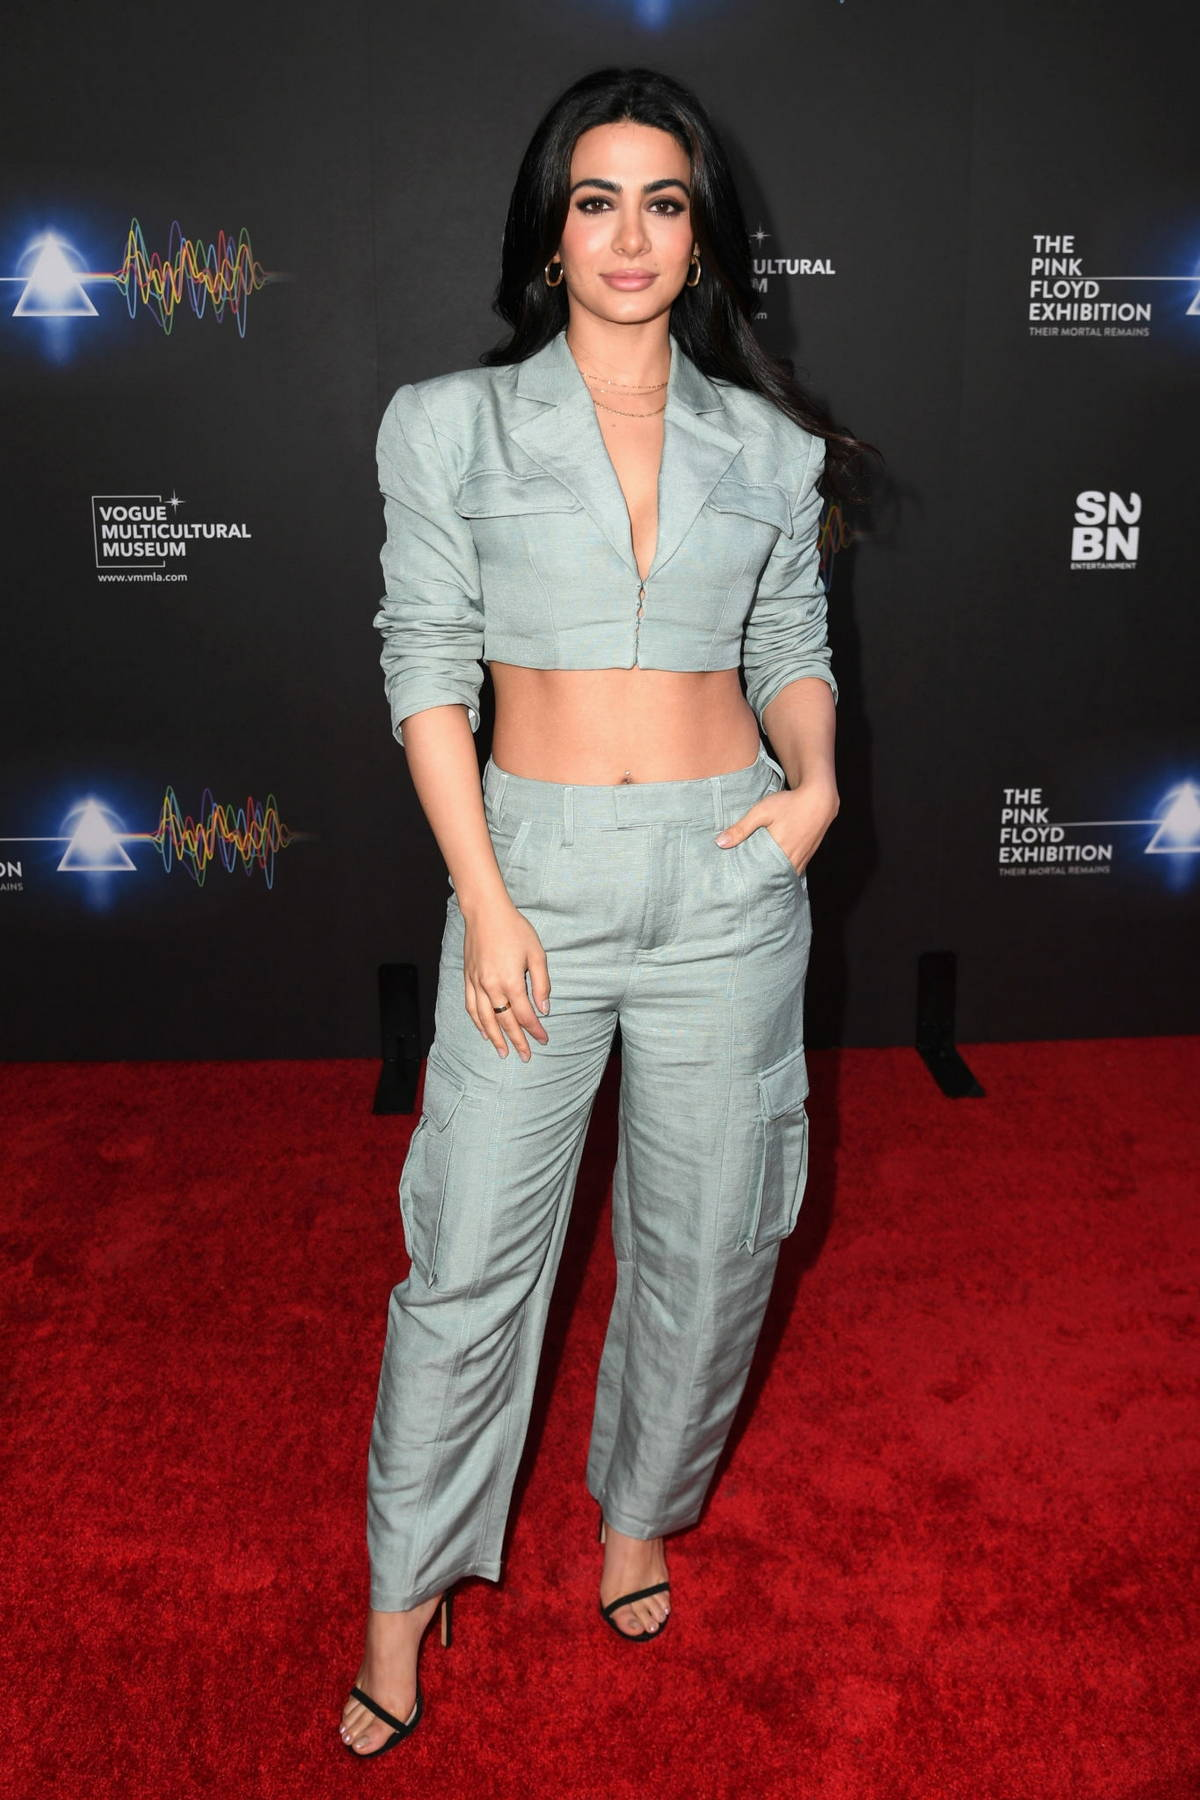 Emeraude Toubia attends the Grand Opening of 'The Pink Floyd Exhibition: Their Mortal Remains' in Los Angeles